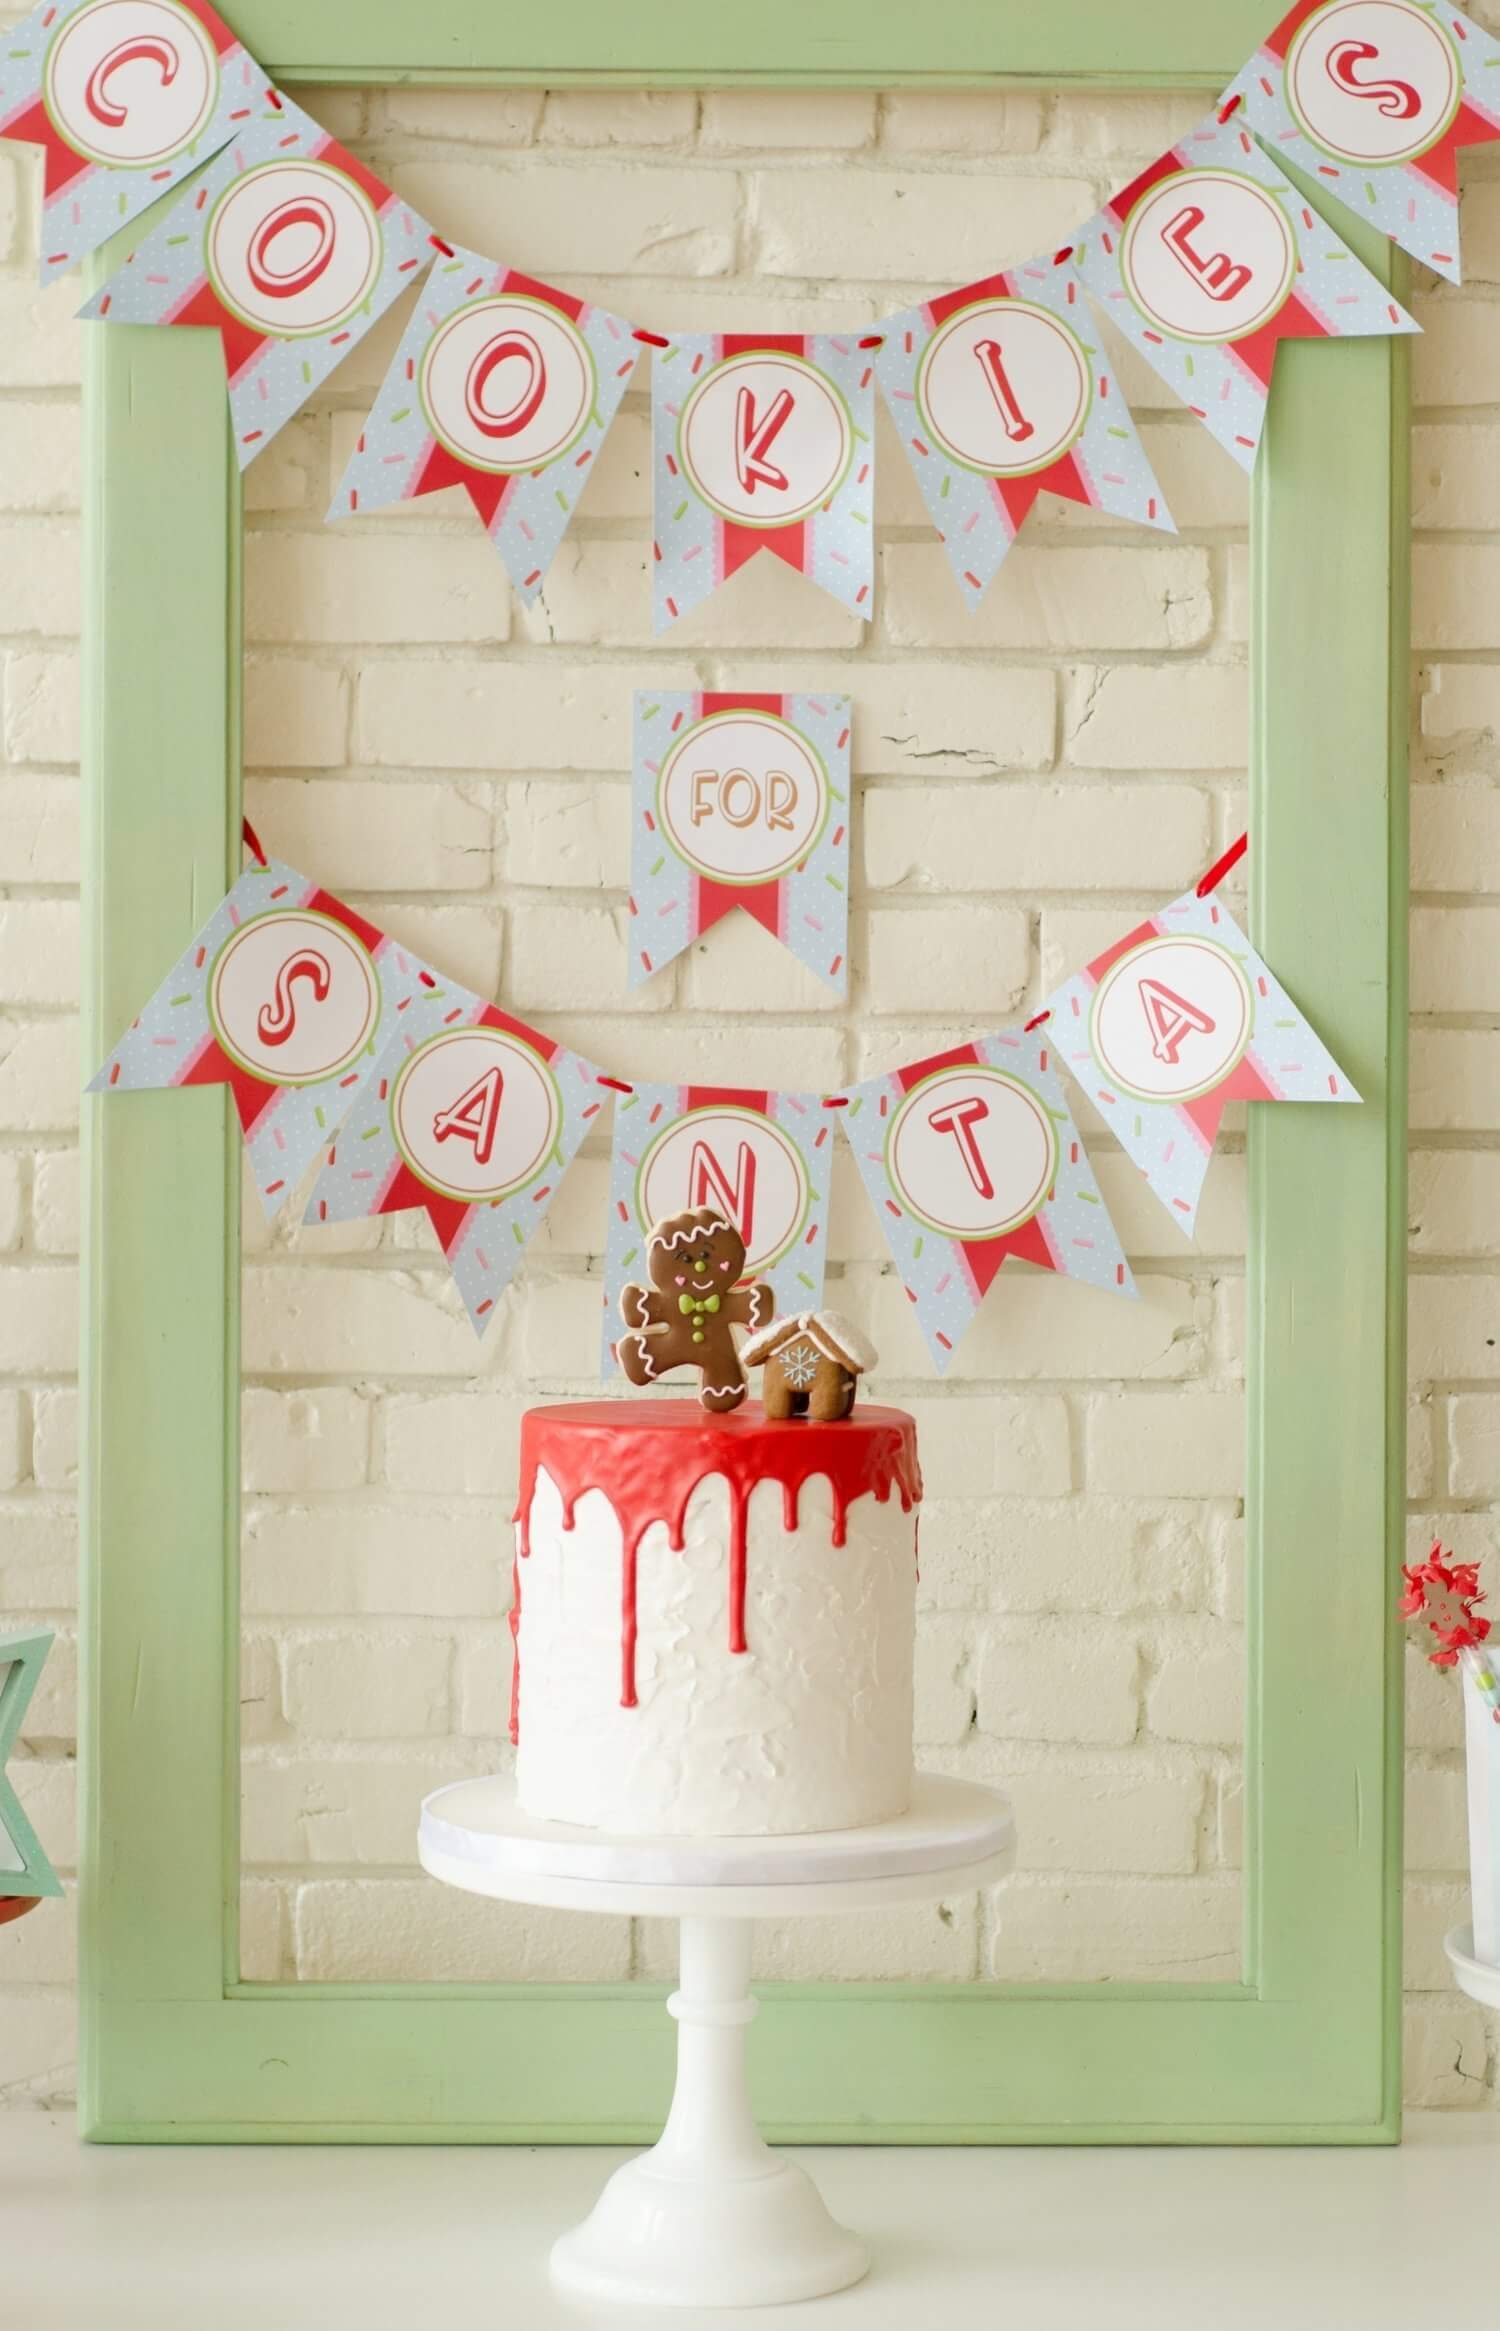 A holiday drip cake topped with a super cute gingerbread boy cookie and a mini gingerbread house. Loving the Cookies for Santa party banner printable as a backdrop. See more from this Cookies for Santa party on www.minteventdesign.com - styled by Austin, Texas based party planner Mint Event Design. #holidayparty #holidaypartyideas #christmaspartyideas #christmascake #holidaydesserts #partybanner